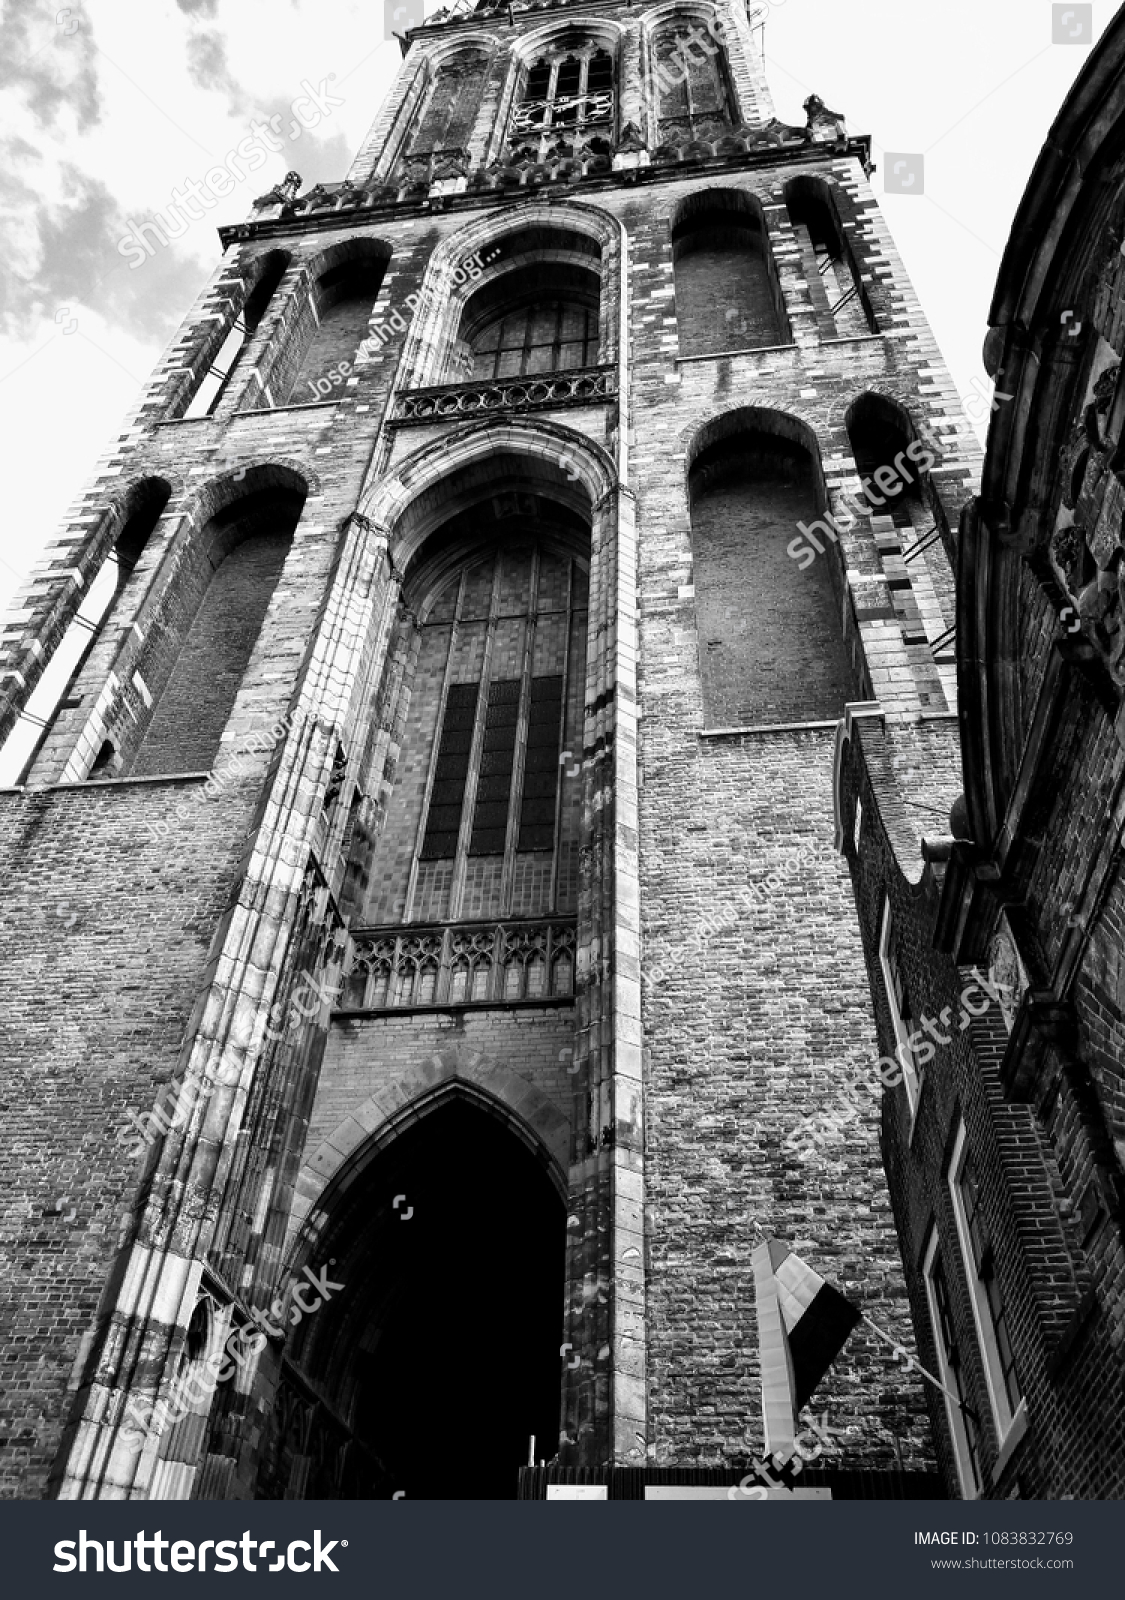 27 04 2018 domtoren tower church utrecht the netherlands black and white photo of view from below image